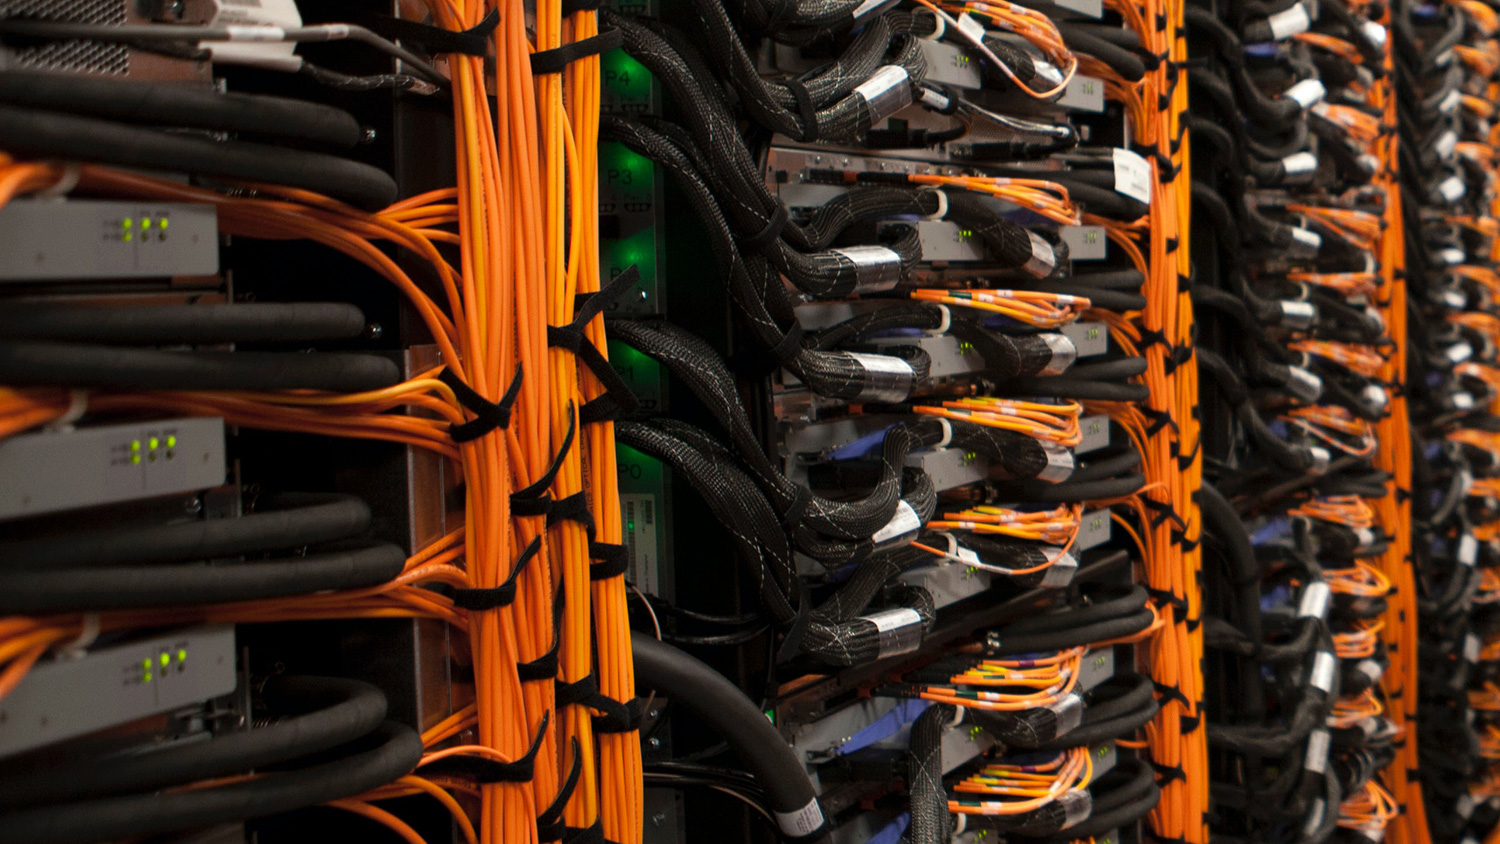 A row of servers cabled together with bright orange cables